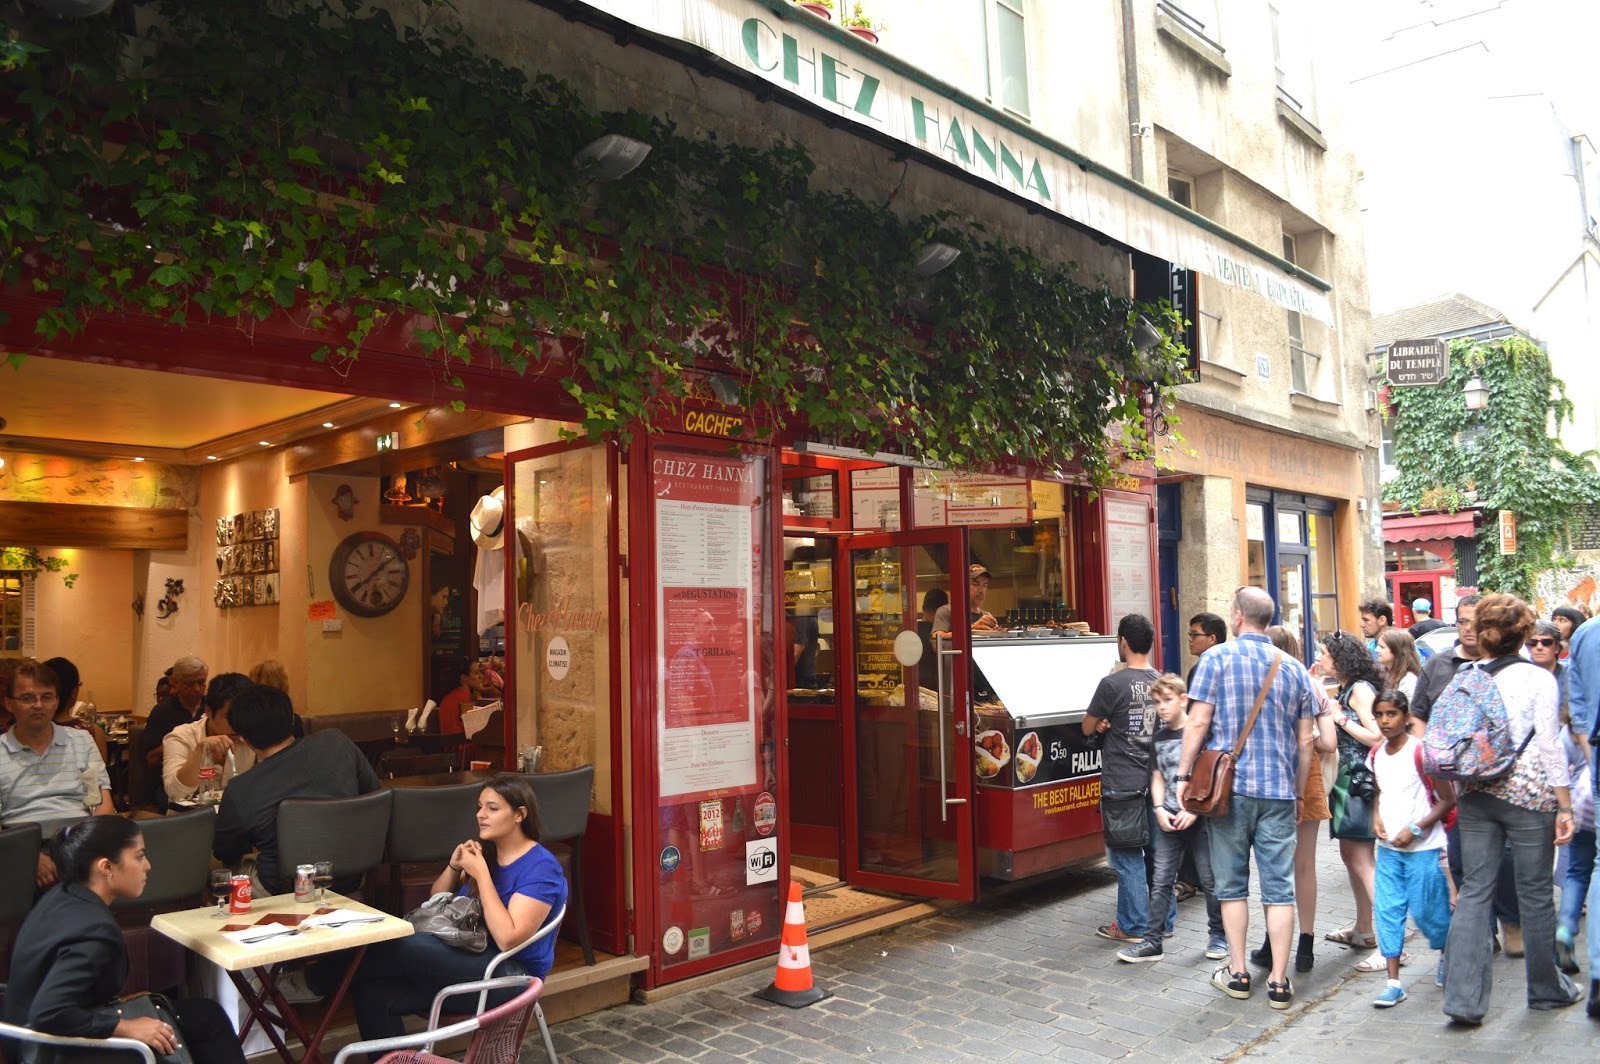 Paris cheap eats, best falafel Chez Hanna, lunch food